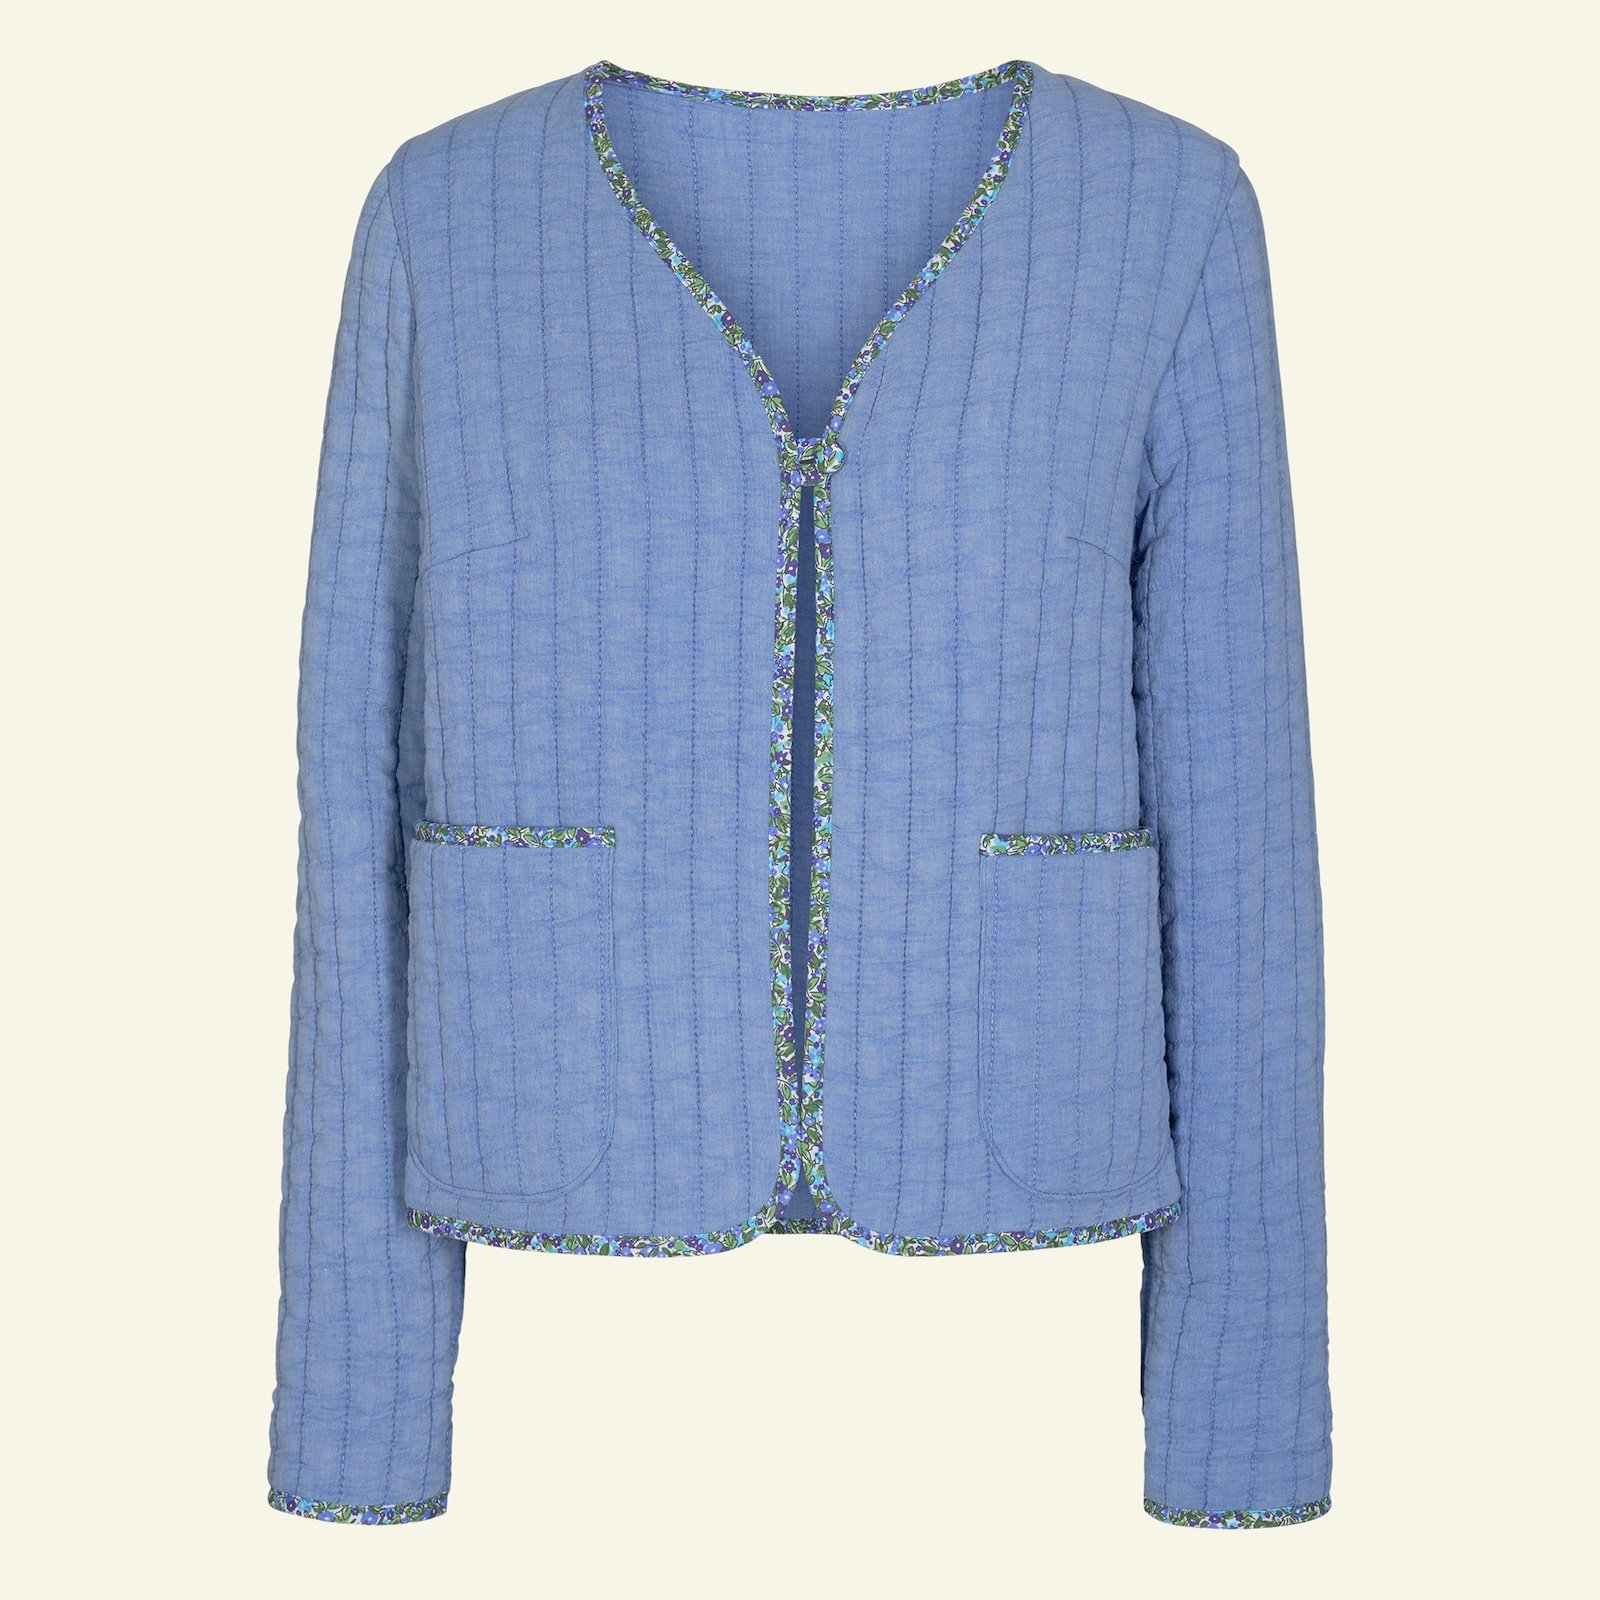 Quilted jacket and waistcoat p24047_920229_64110_43507_sskit